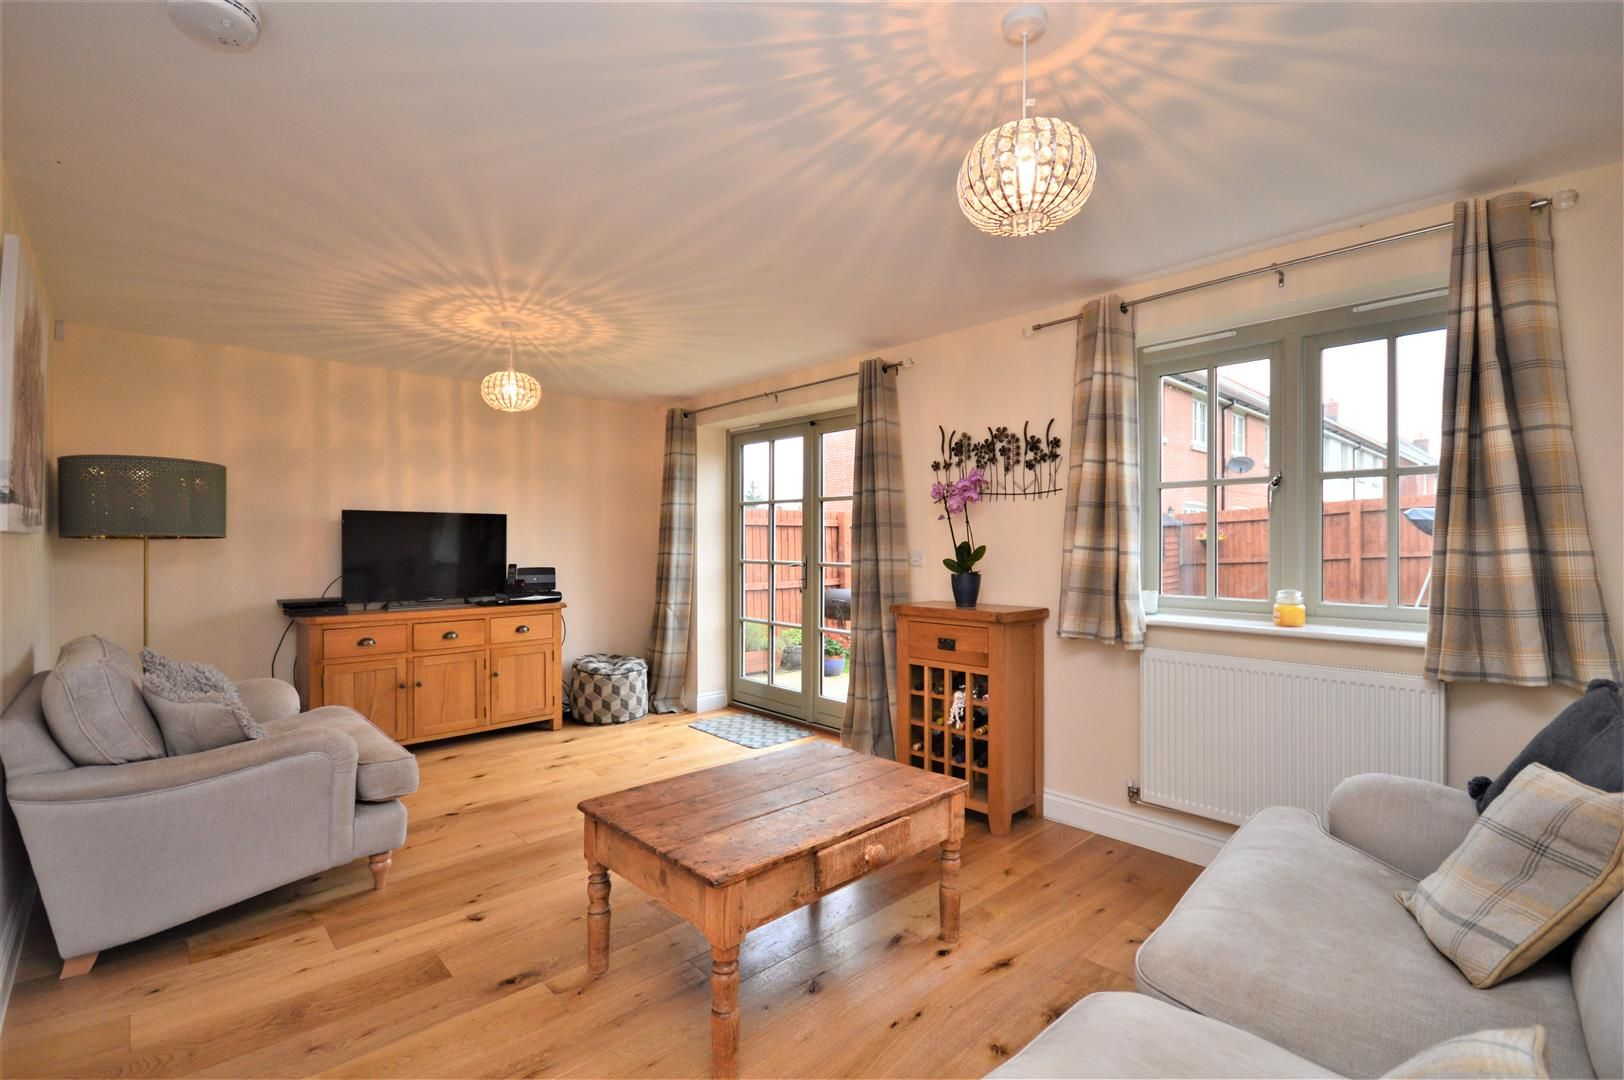 3 bed semi-detached for sale in Bodenham 4